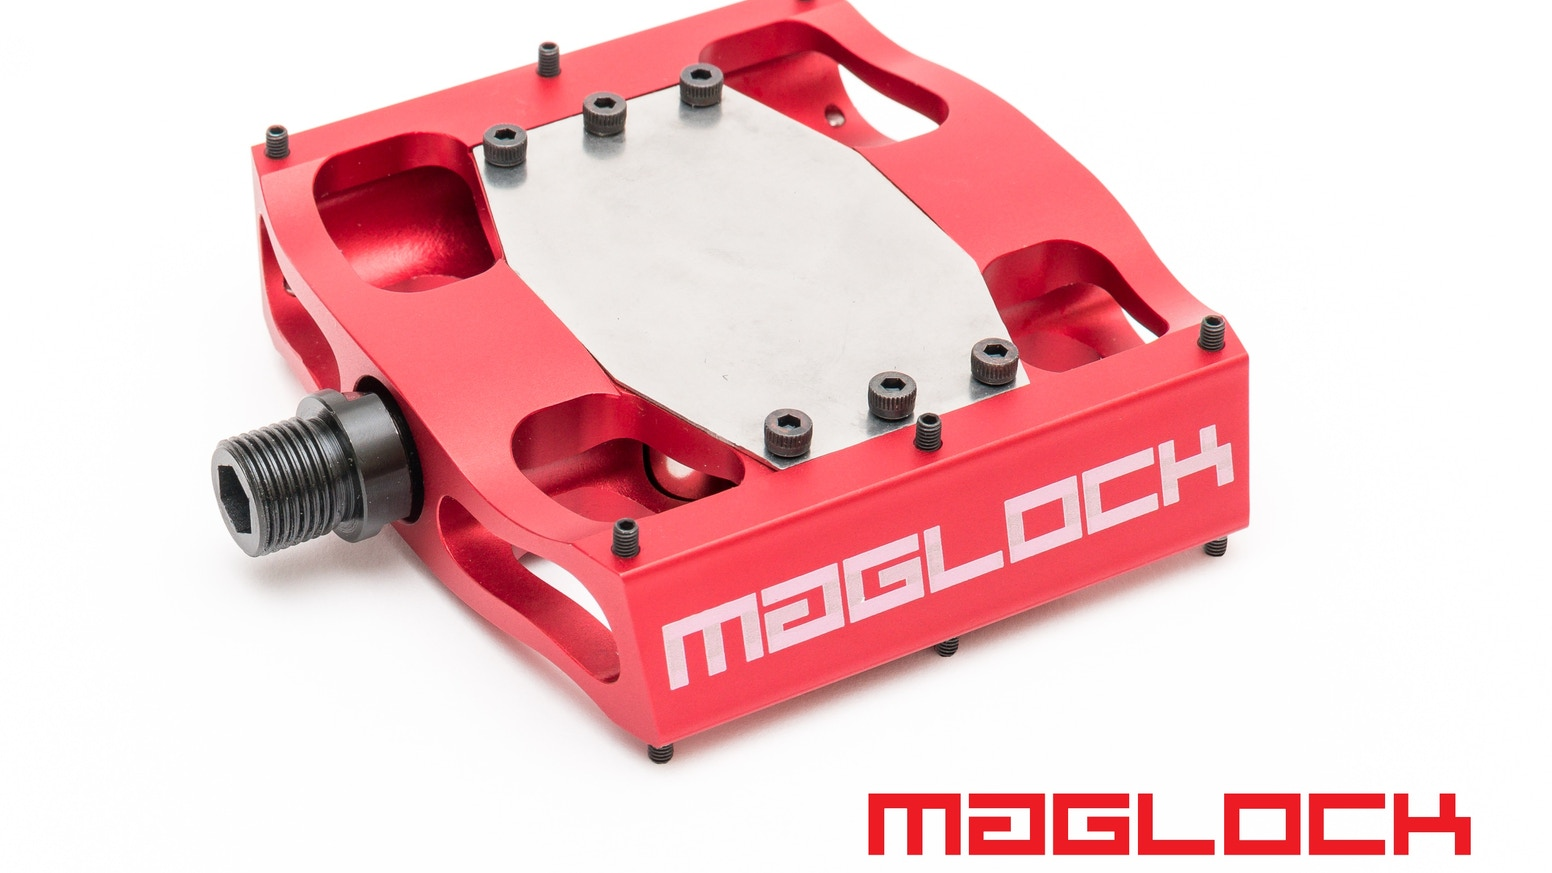 """You Rule Your Bike"" with magnetically clipping bike pedals that make clipping in and out safe and easy."